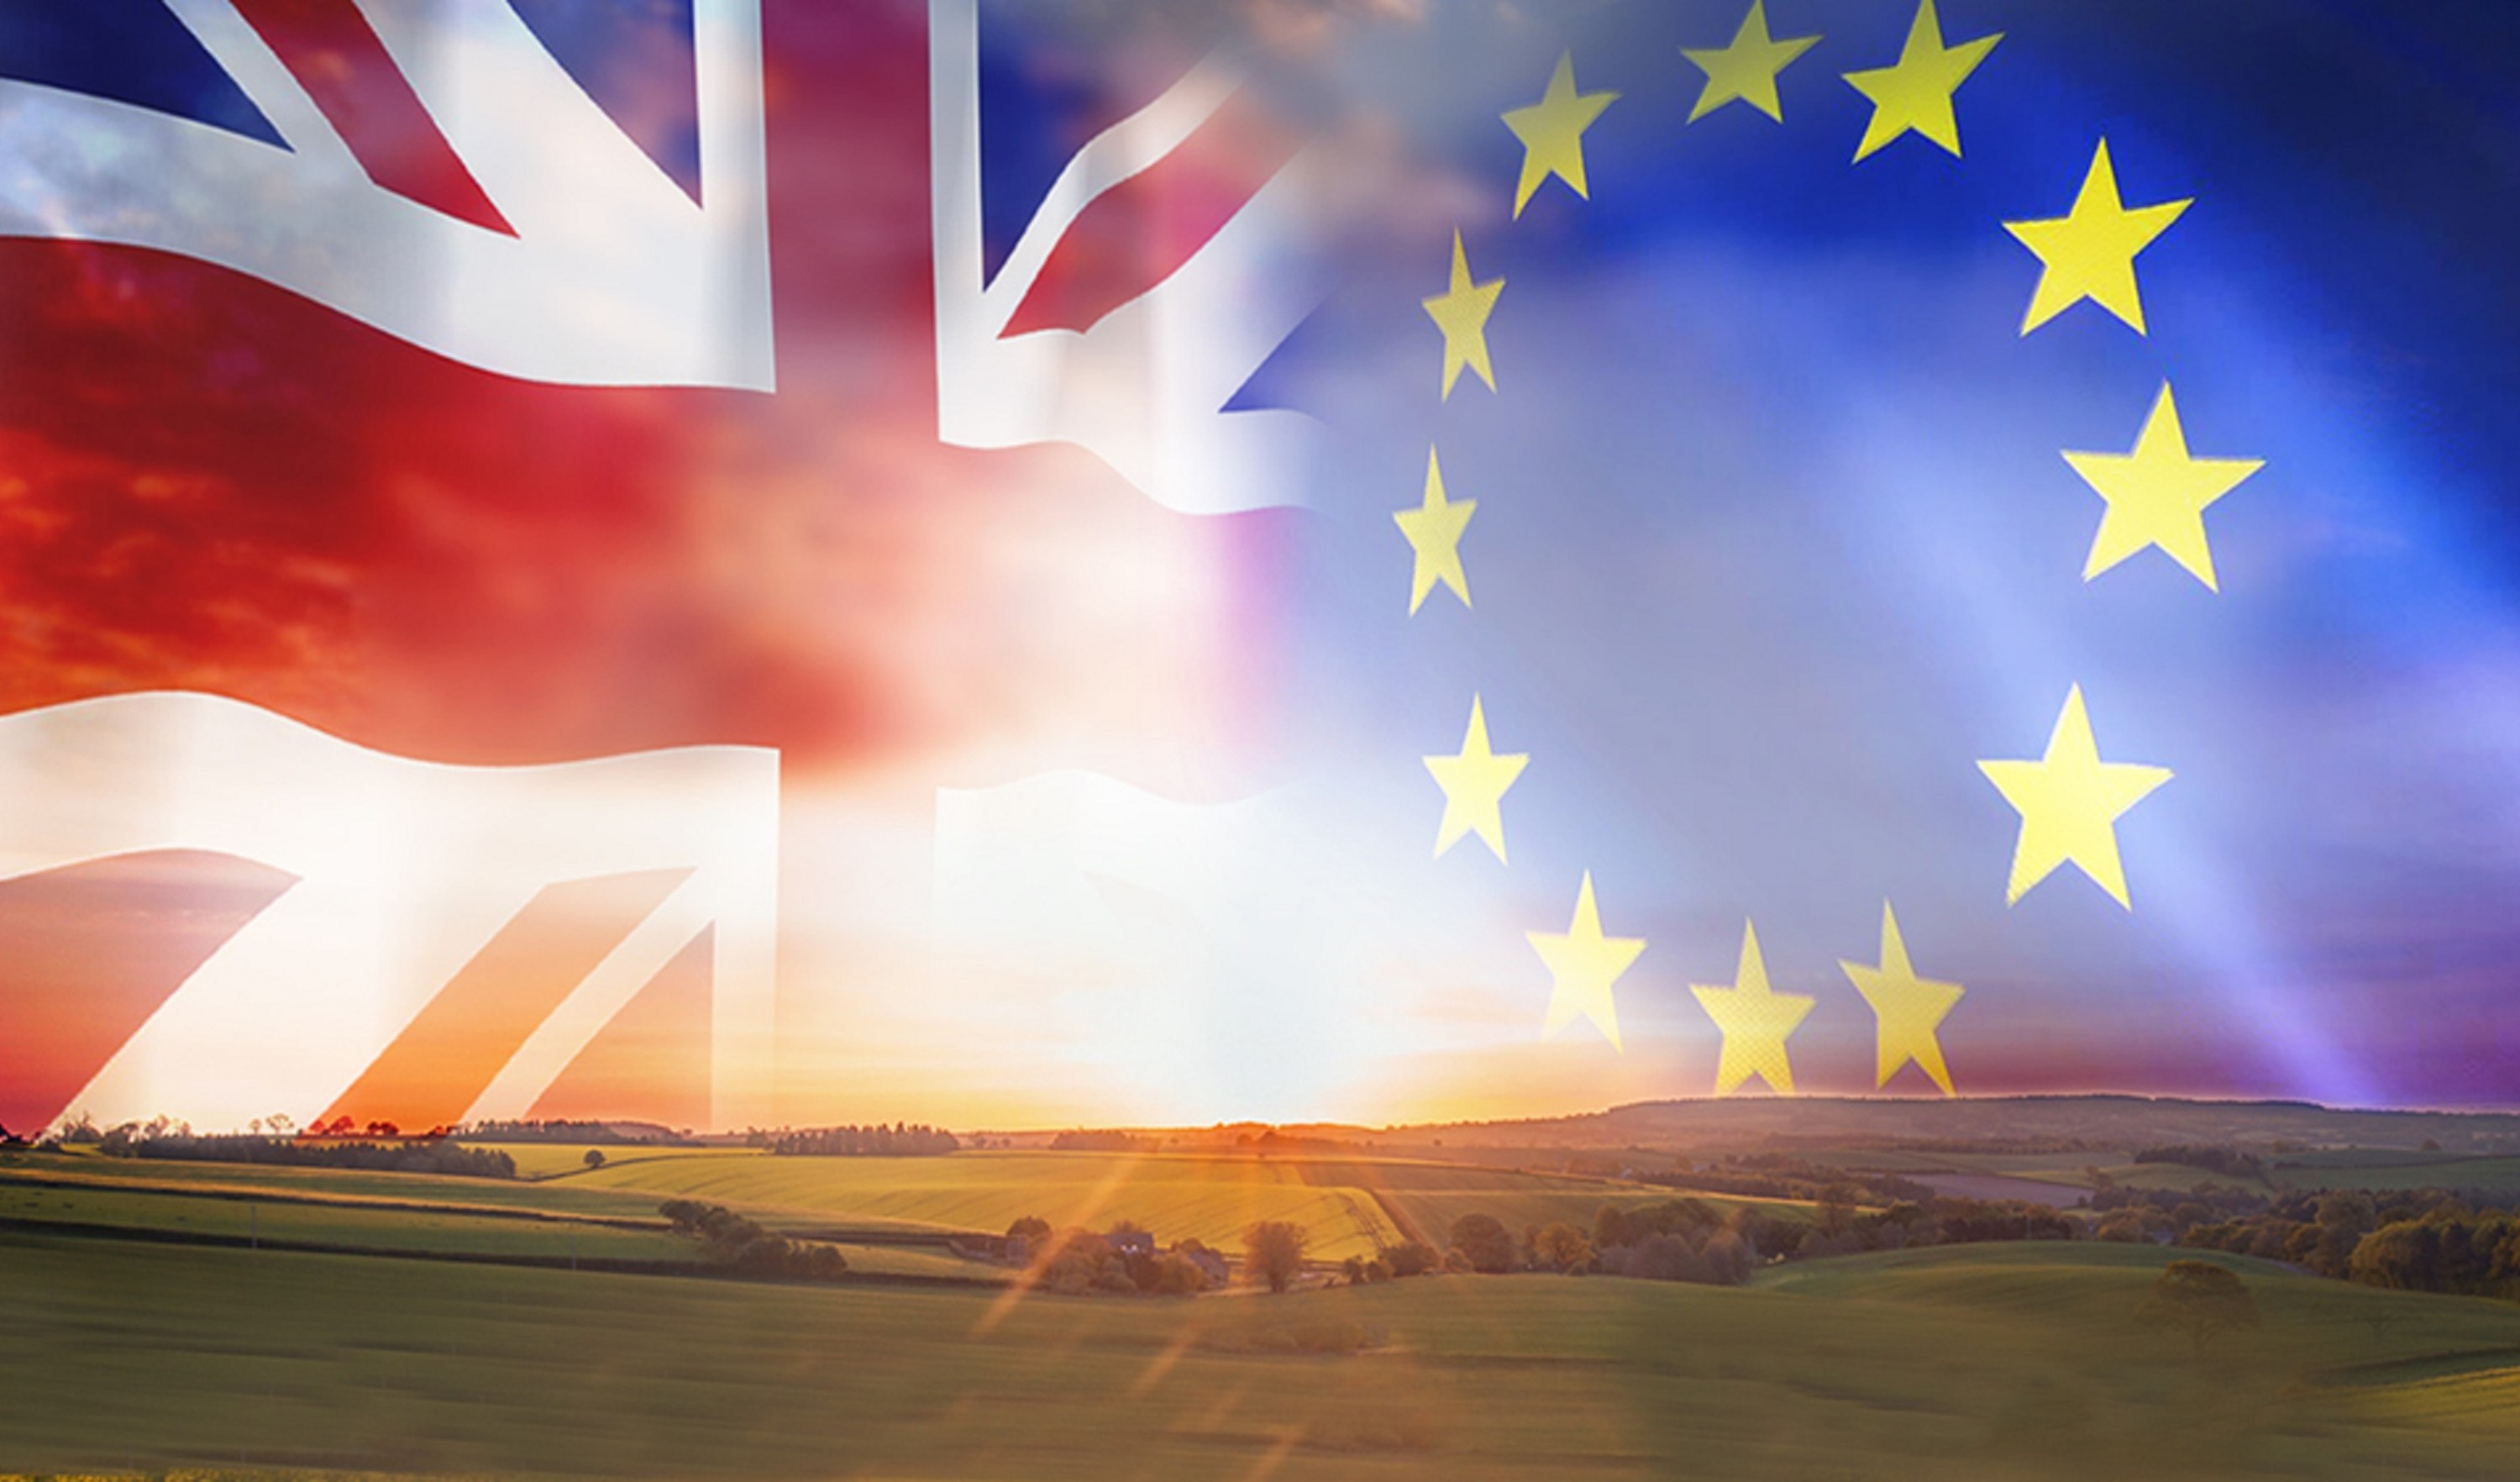 Brexit impact - Stronger in Europe - seed sector